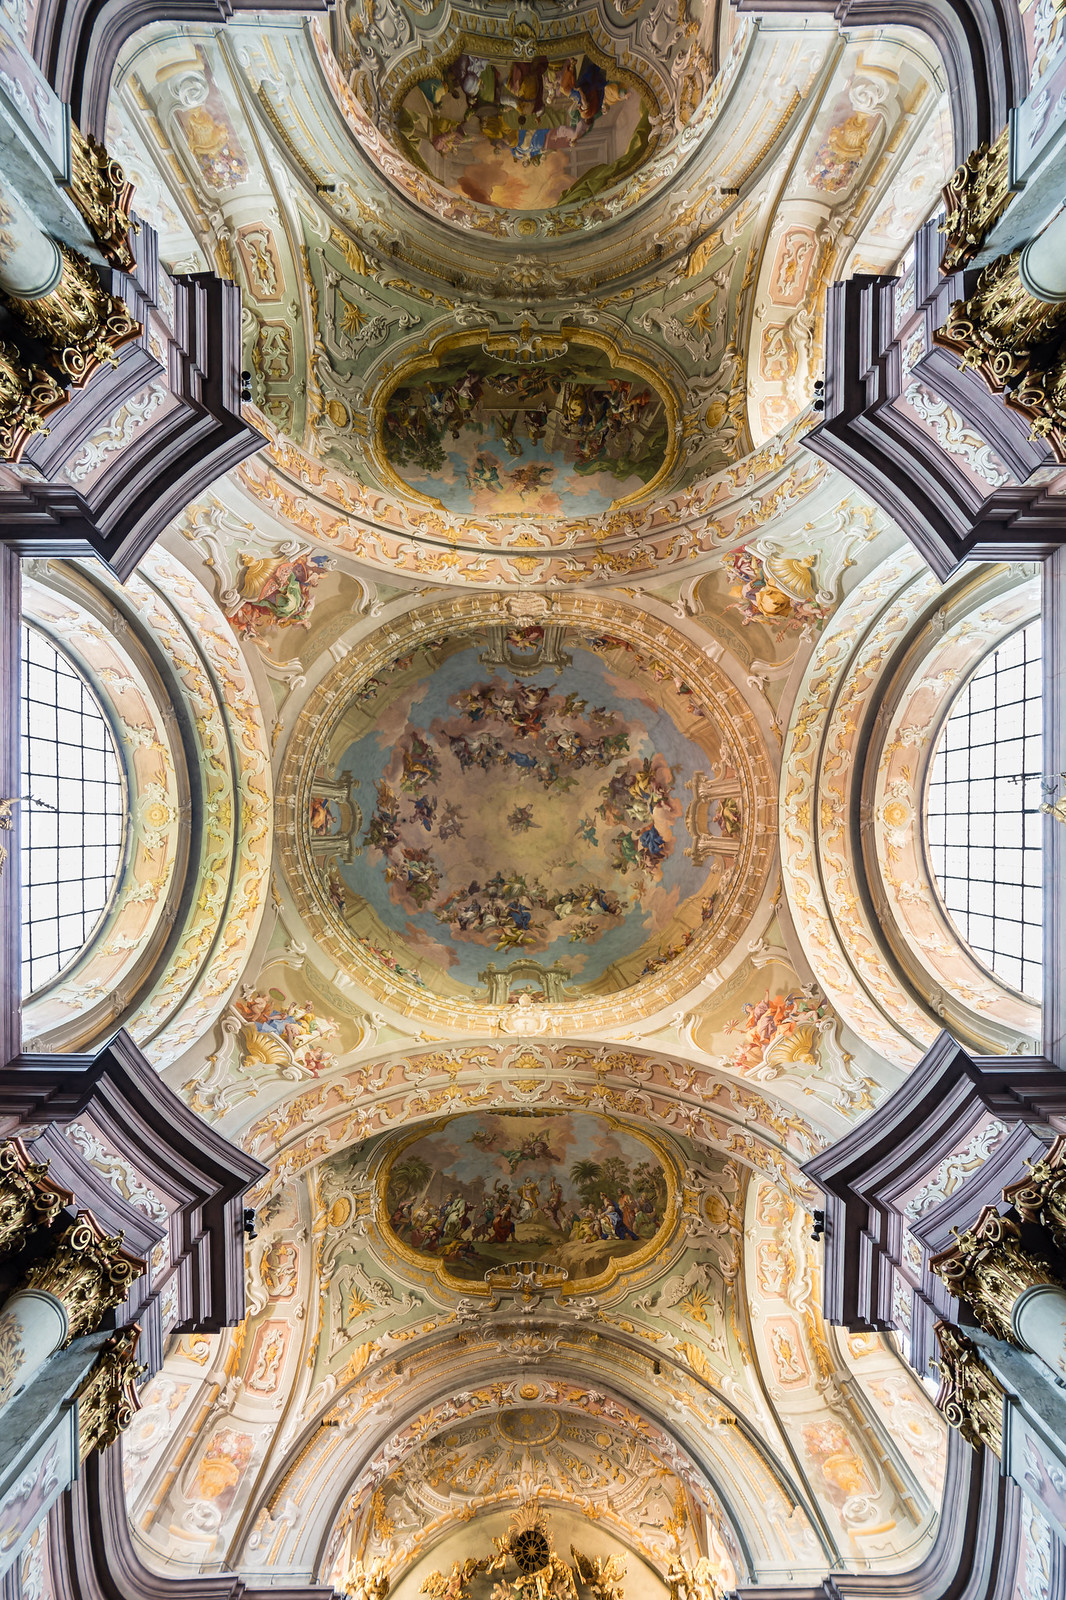 Ceiling frescos in Herzogenburg Abbey Church (Lower Austria) by Daniel Gran (left fresco) and Bartolomeo Altomonte. Credit Uoaei1